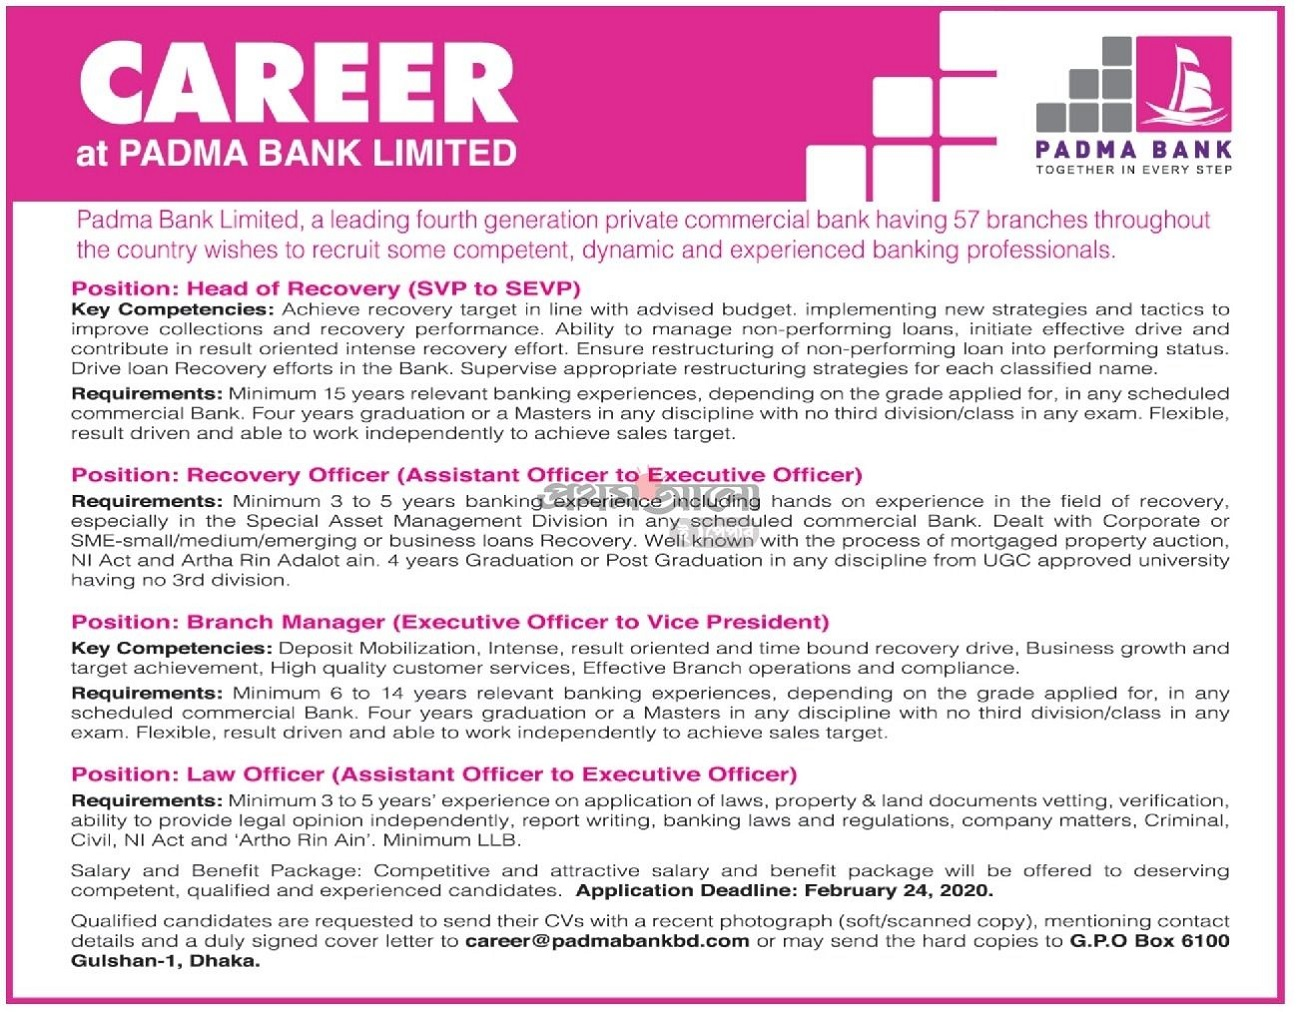 Padma Bank Limited Job Circular 2020